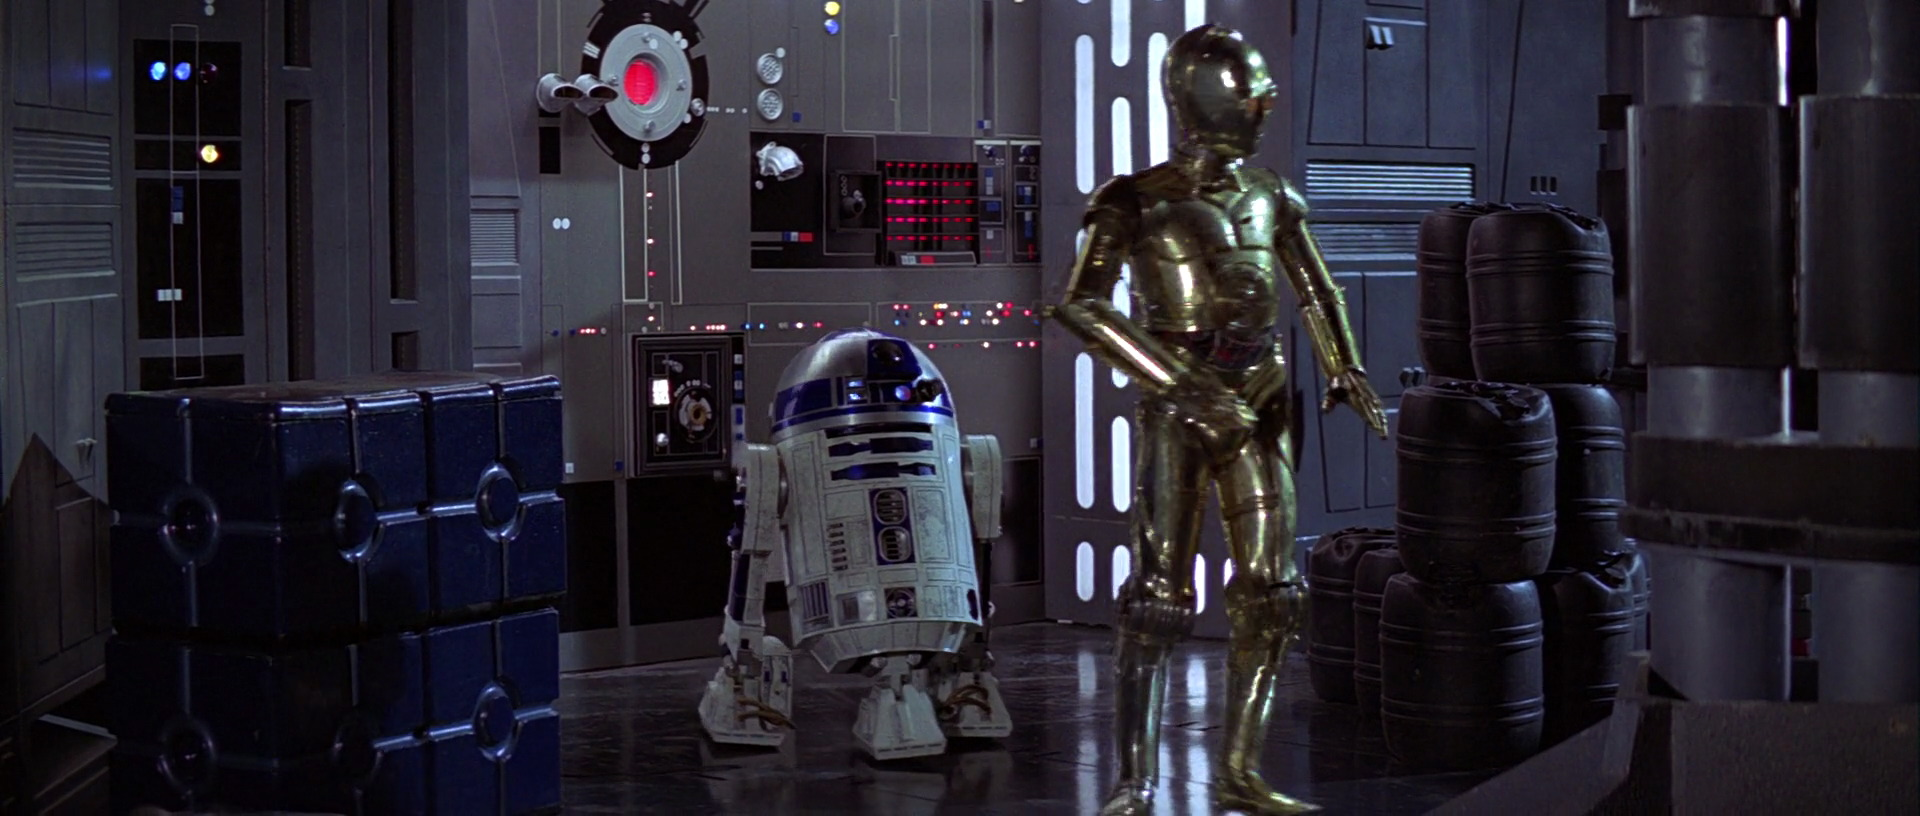 star-wars4-movie-screencaps.com-10809.jpg